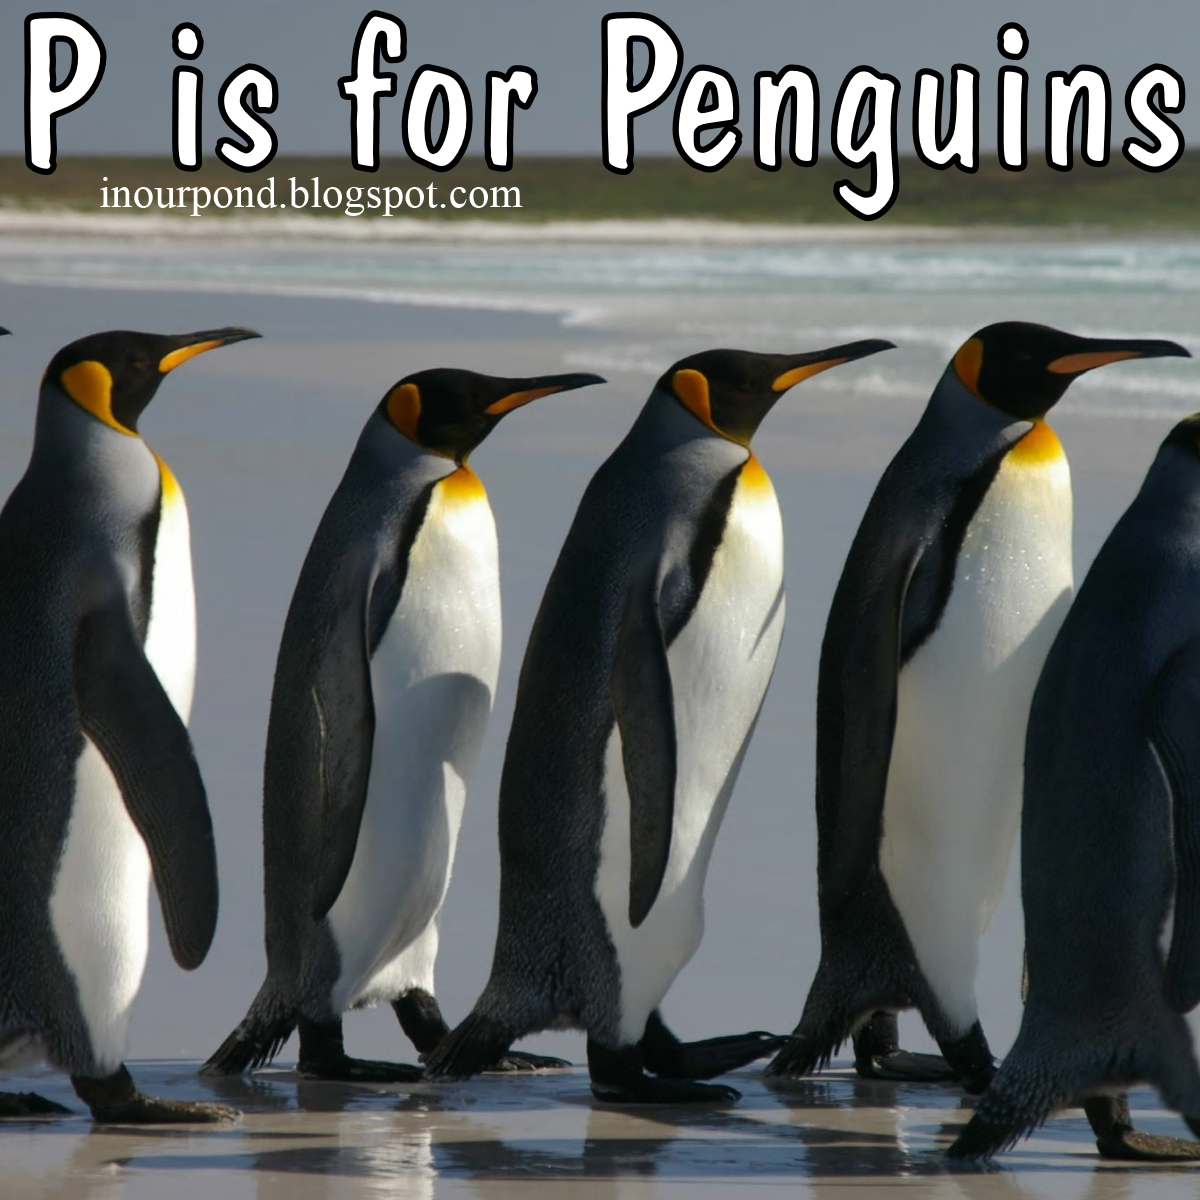 P Is For Penguins